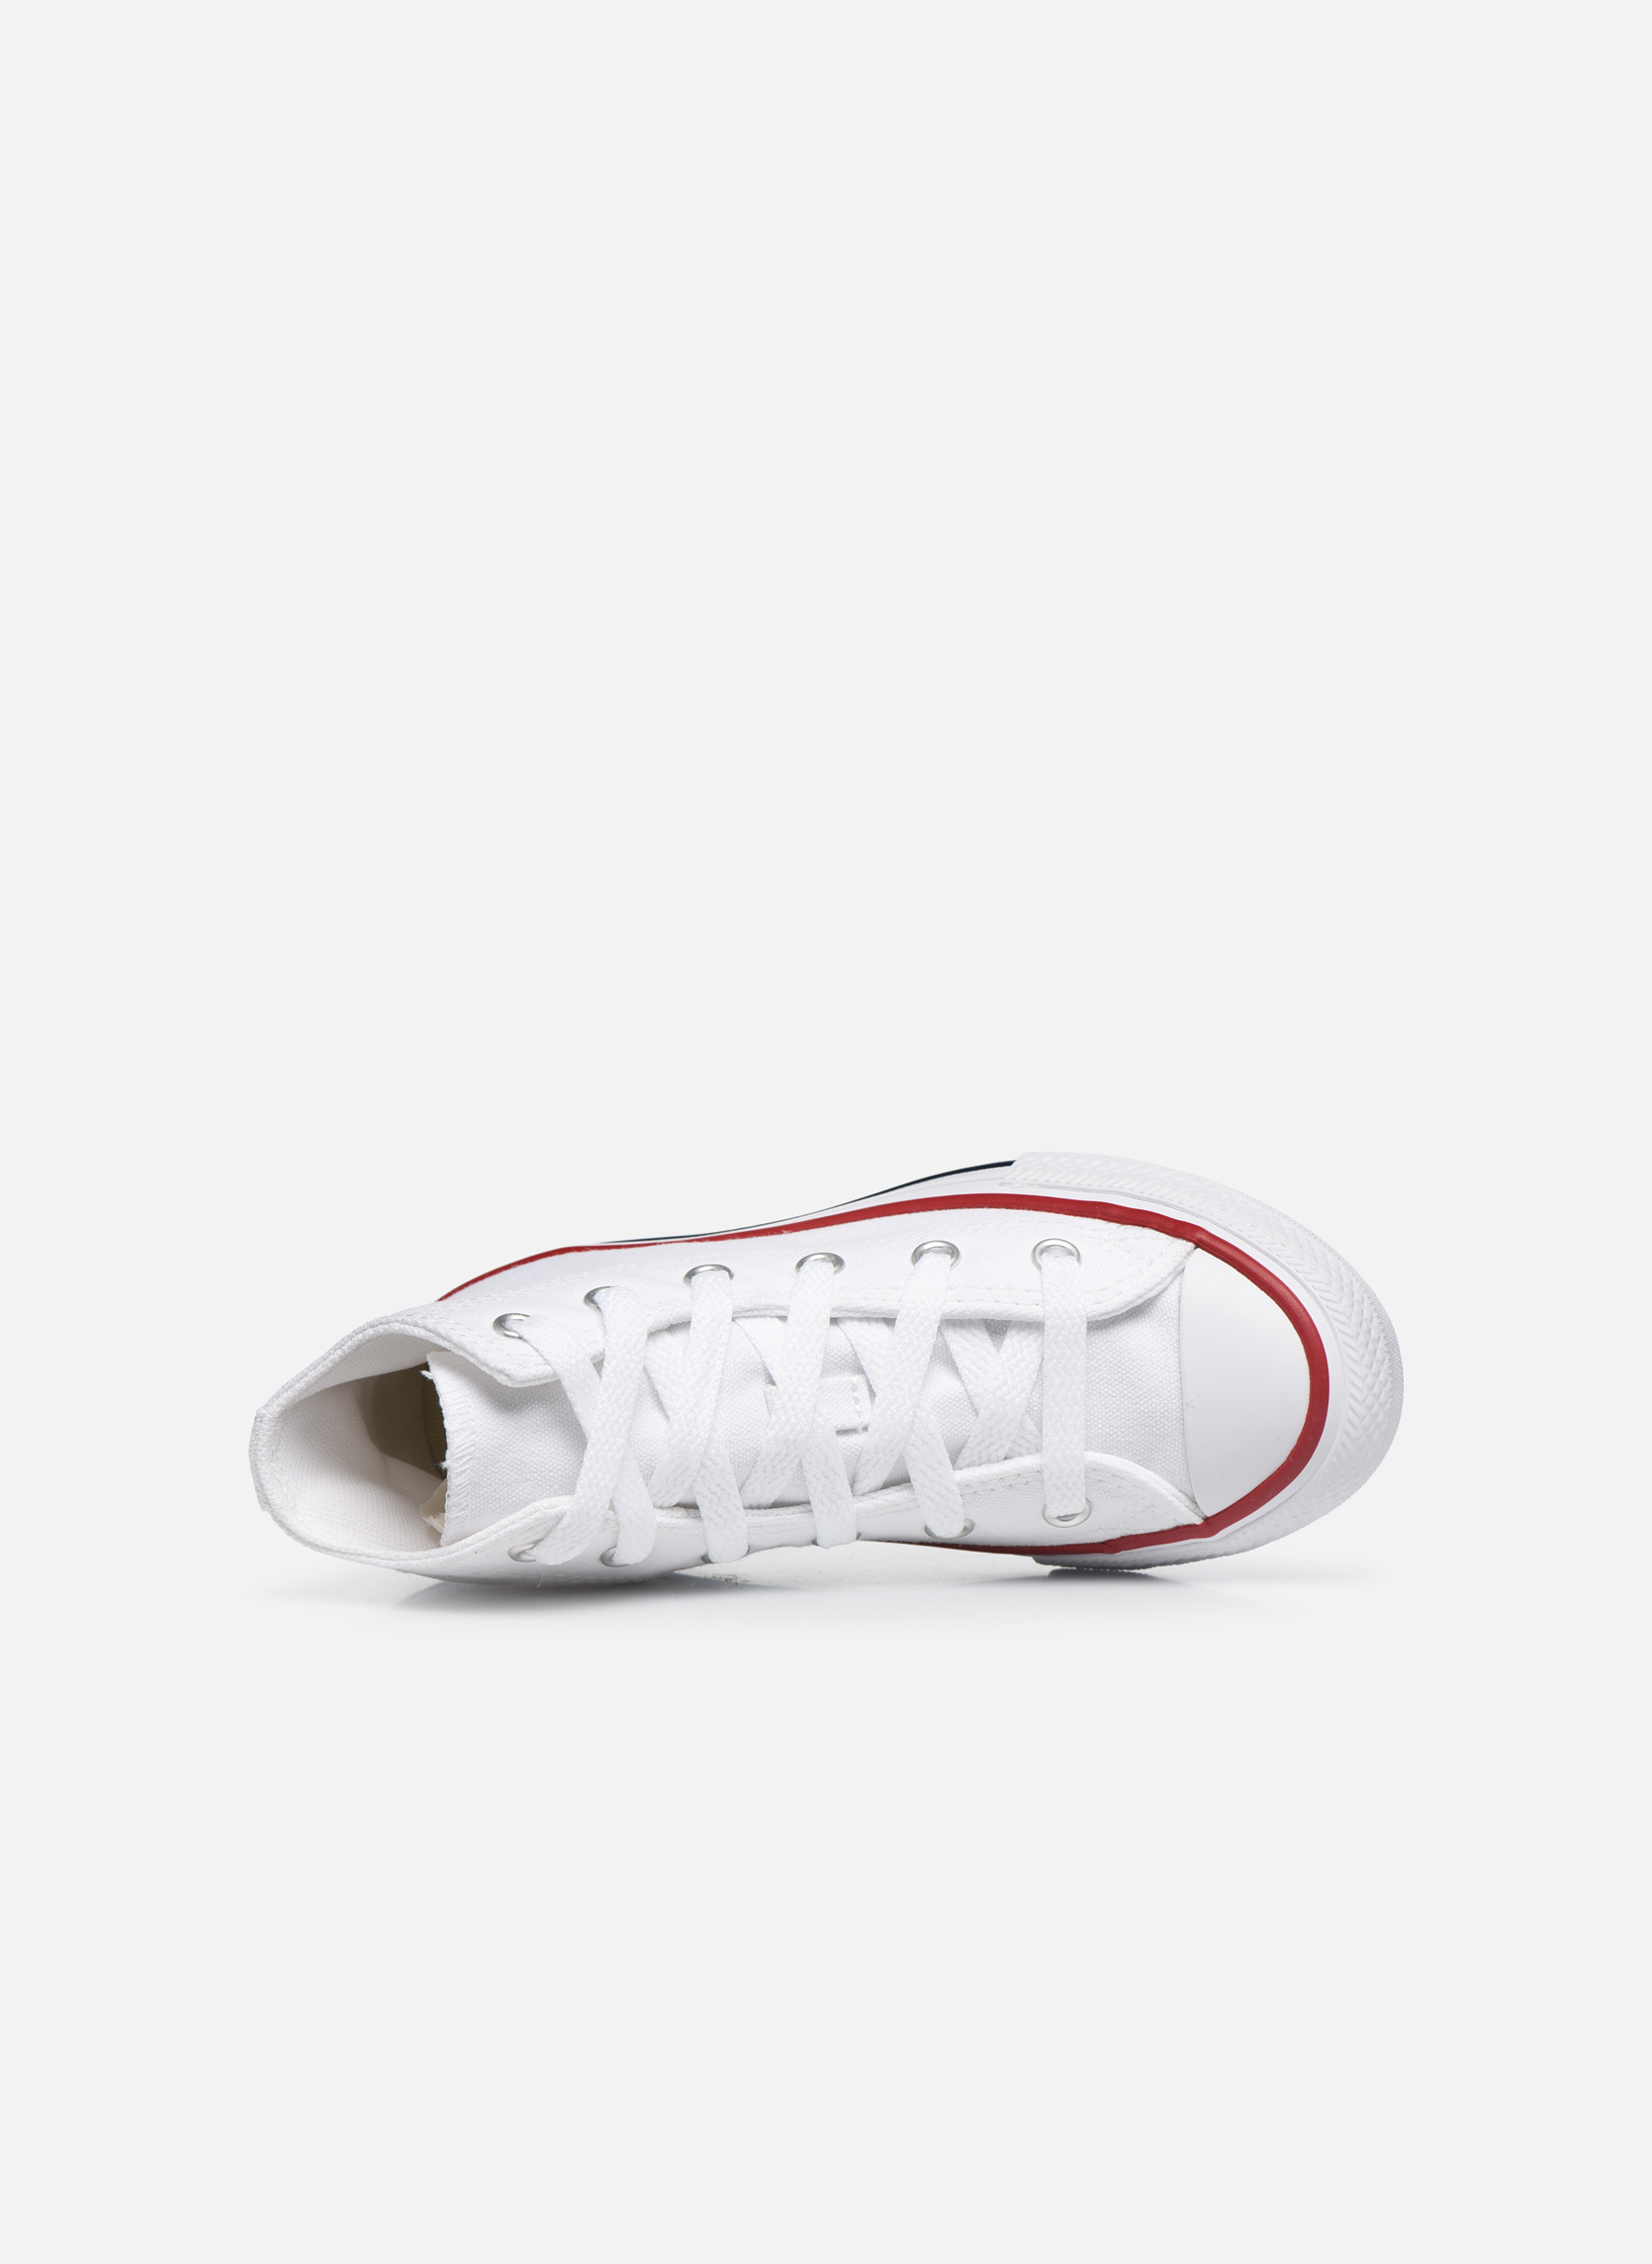 Chuck Taylor All Star Core Hi Optical White